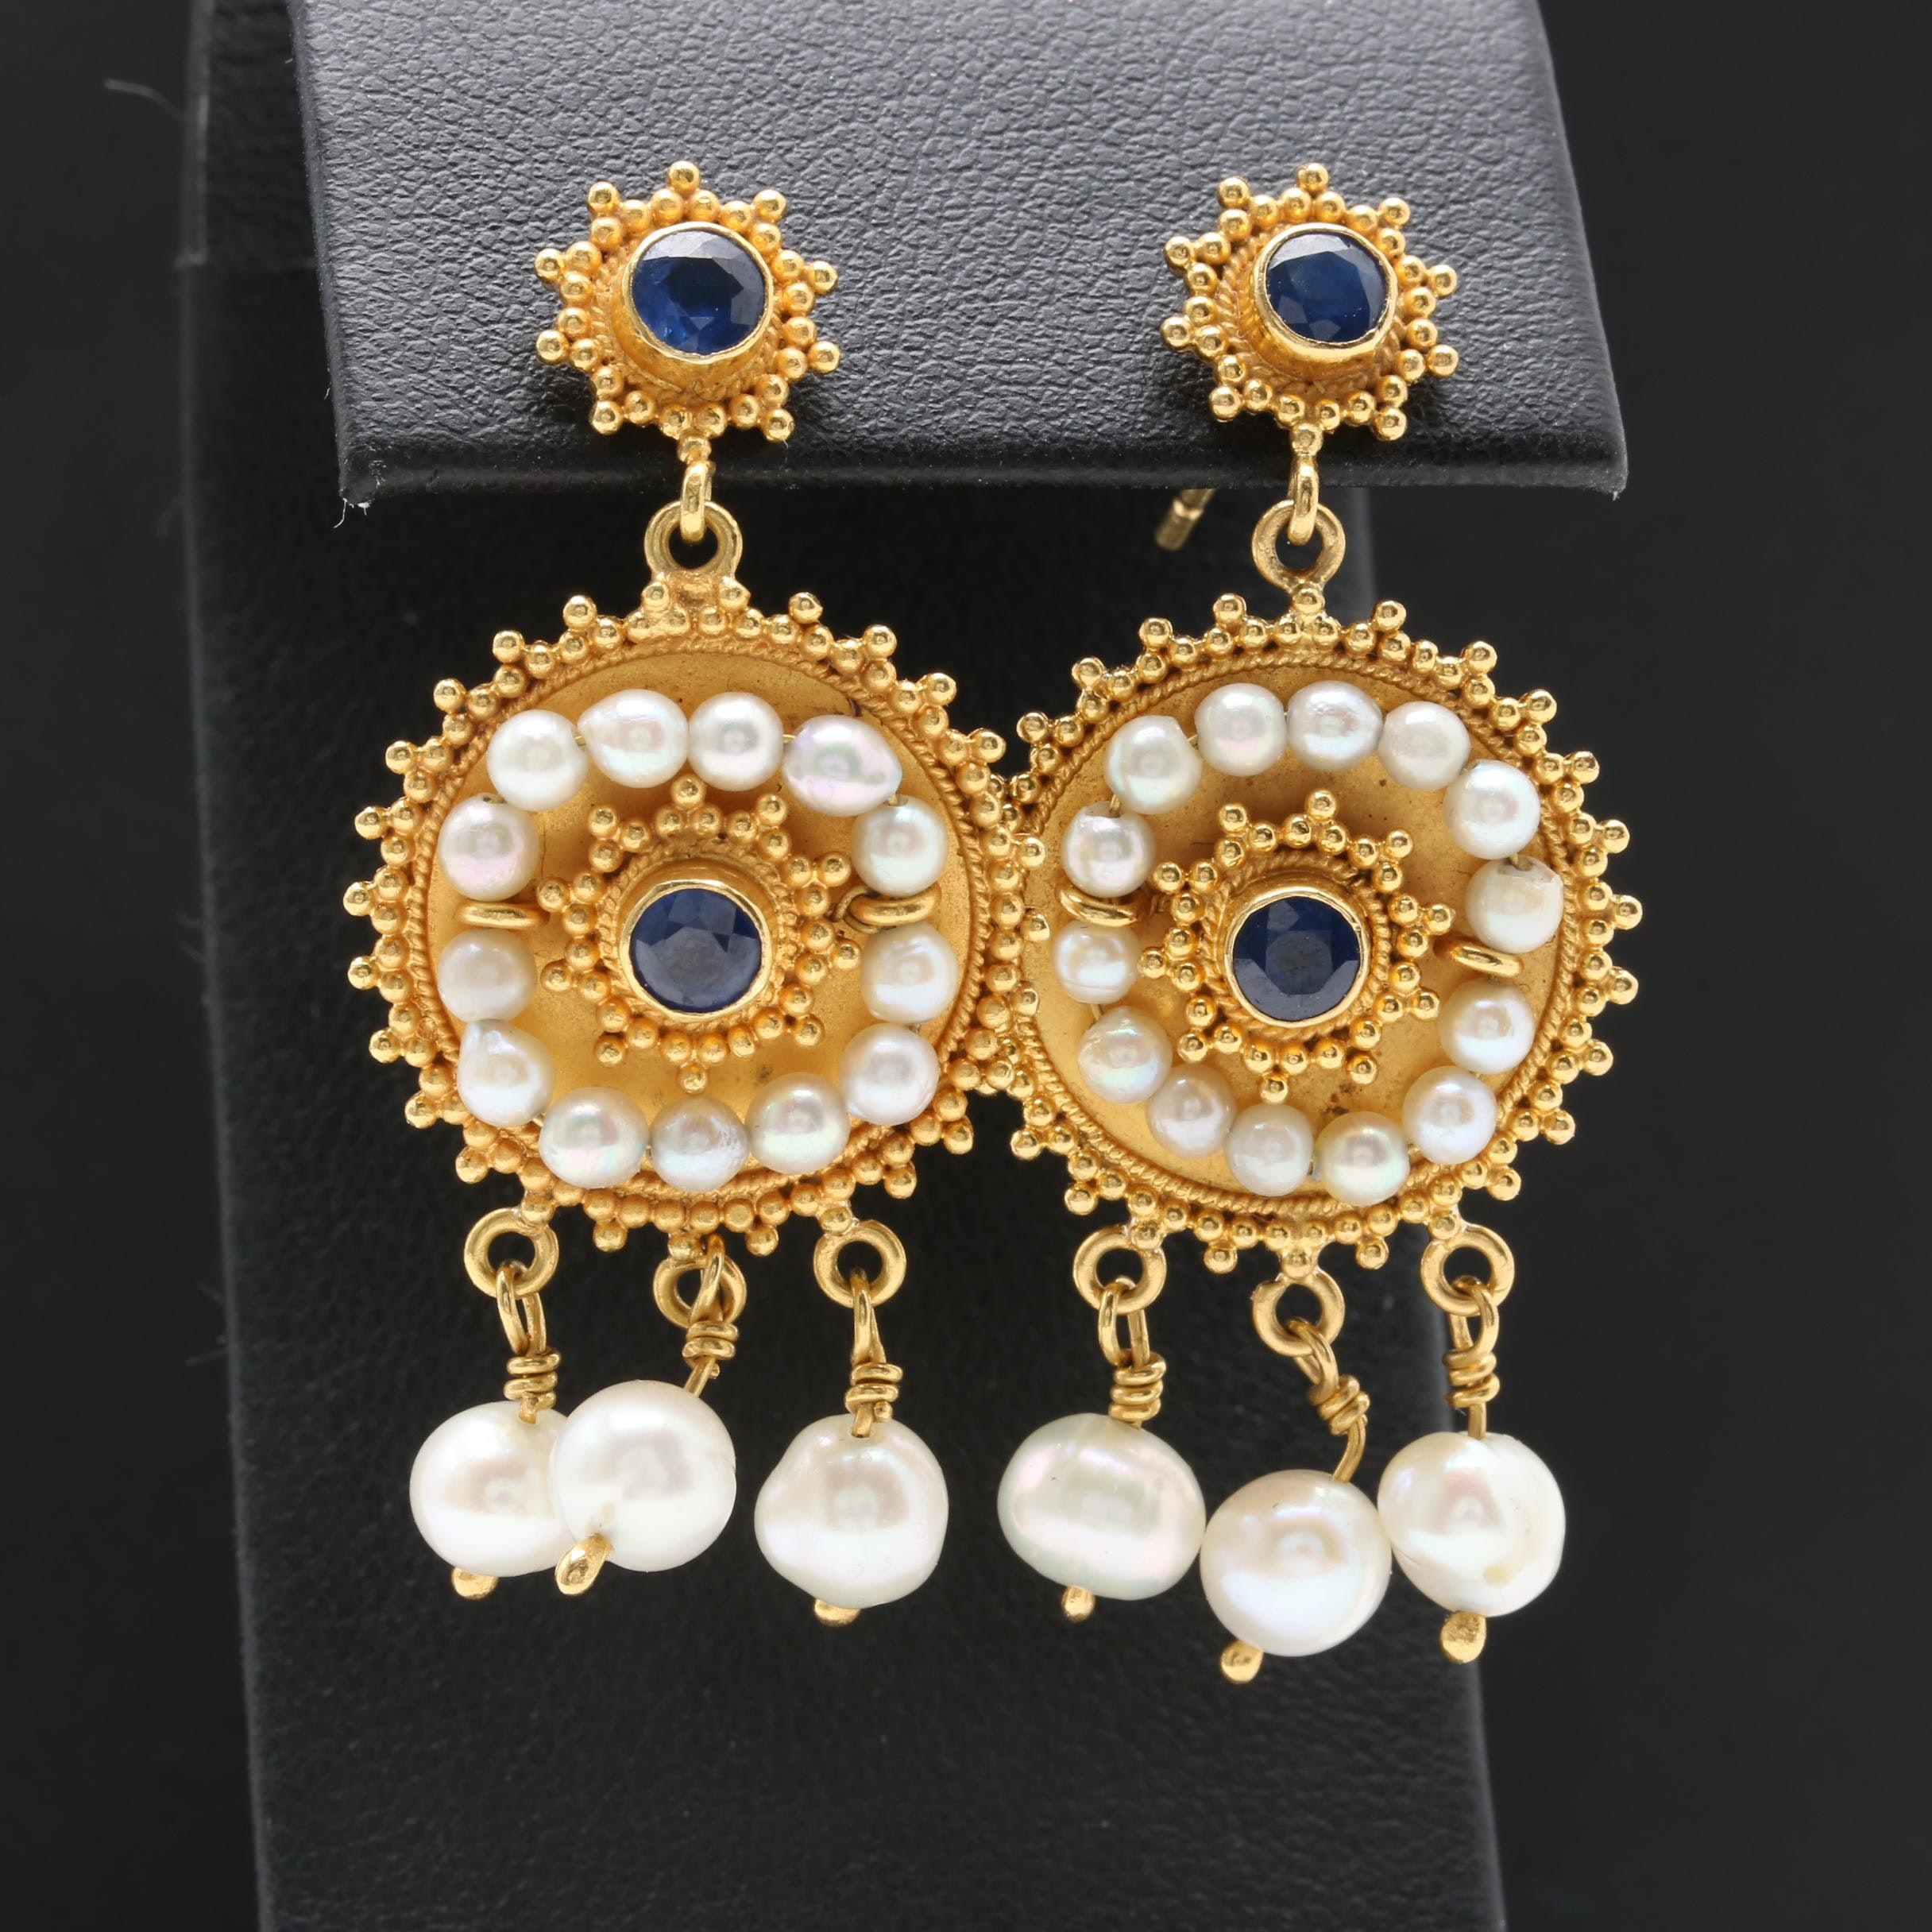 Etruscan Revival Style 14K Yellow Gold Blue Sapphire and Cultured Pearl Earrings